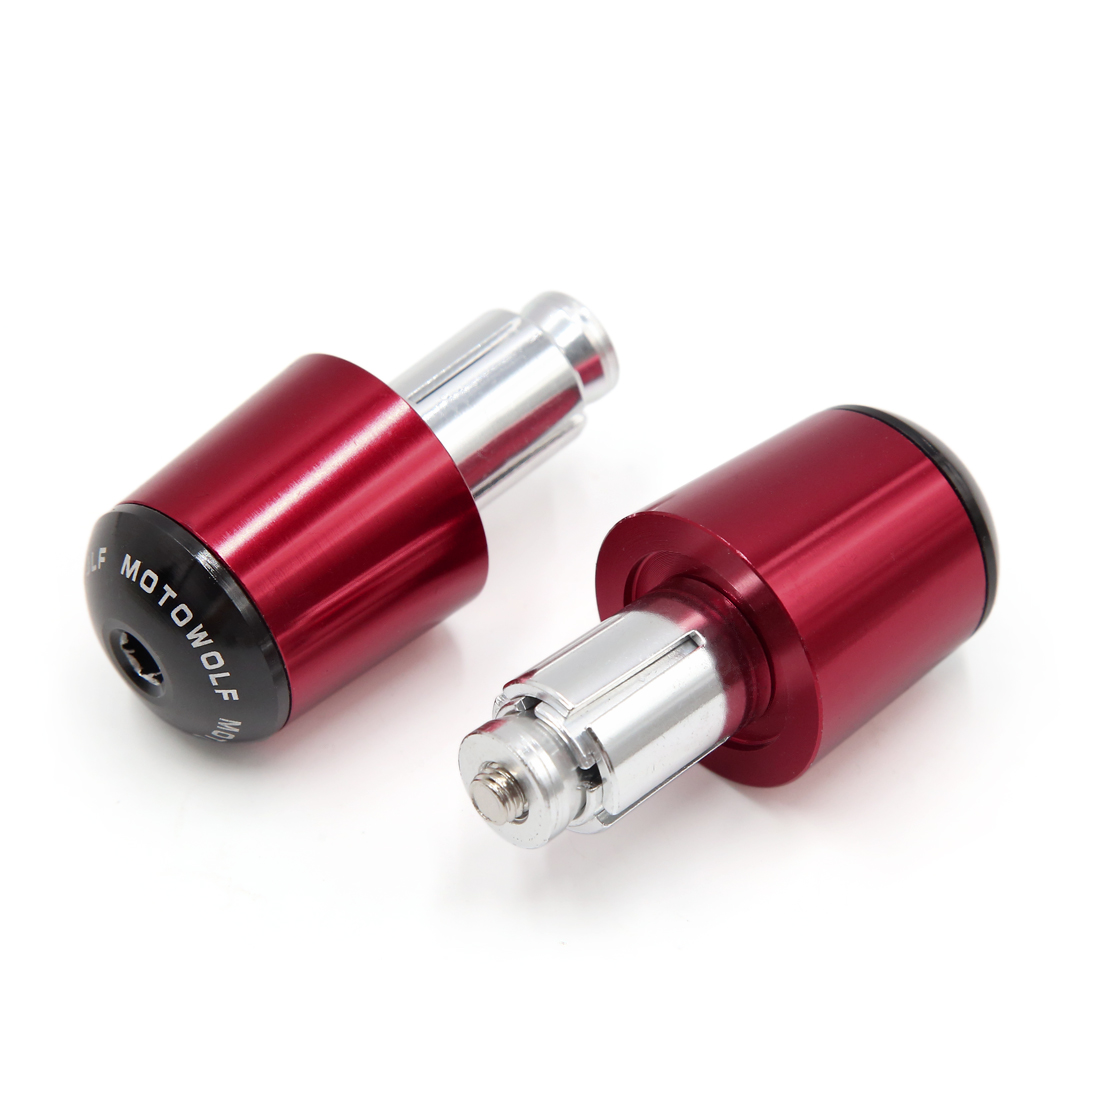 2Pcs Red Aluminum Alloy Handle Bar End Cap Fit for 17mm Motorcycle Handlebar